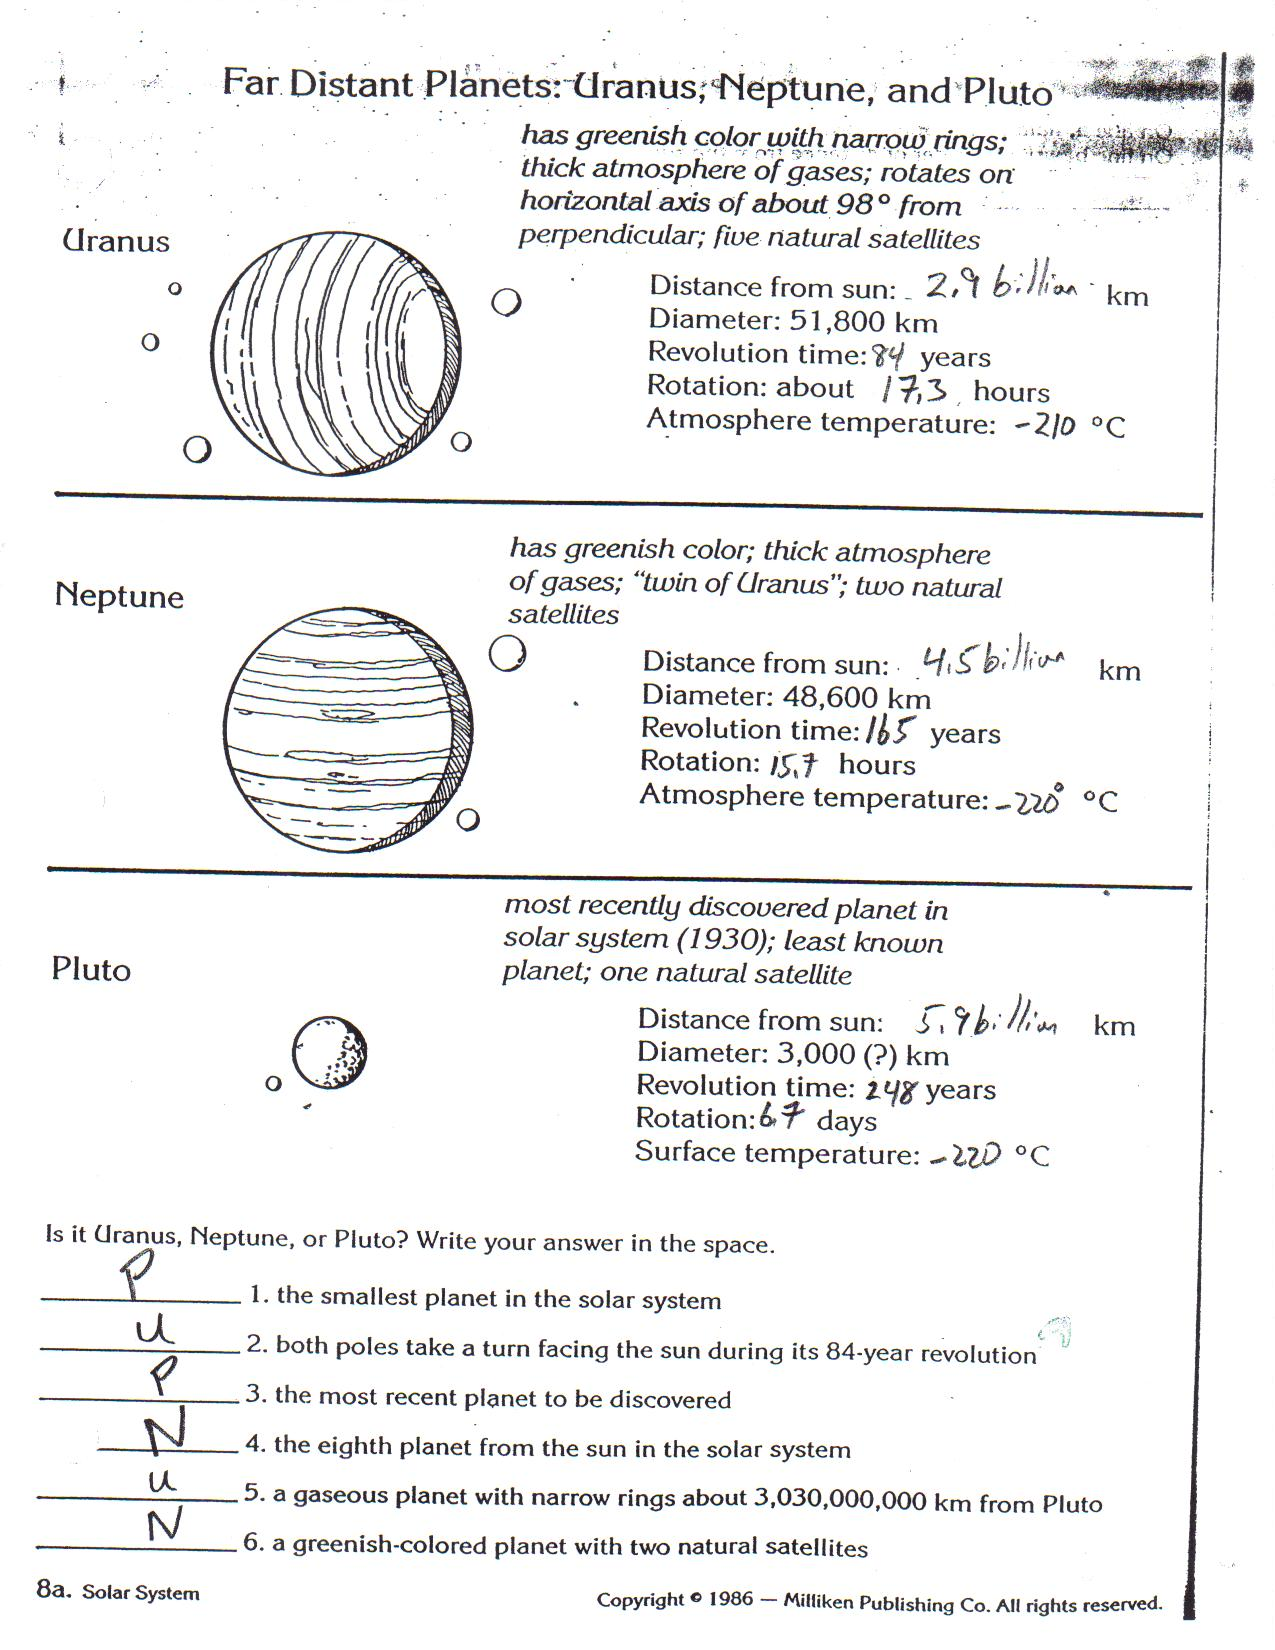 solar system project 1st grade - photo #30